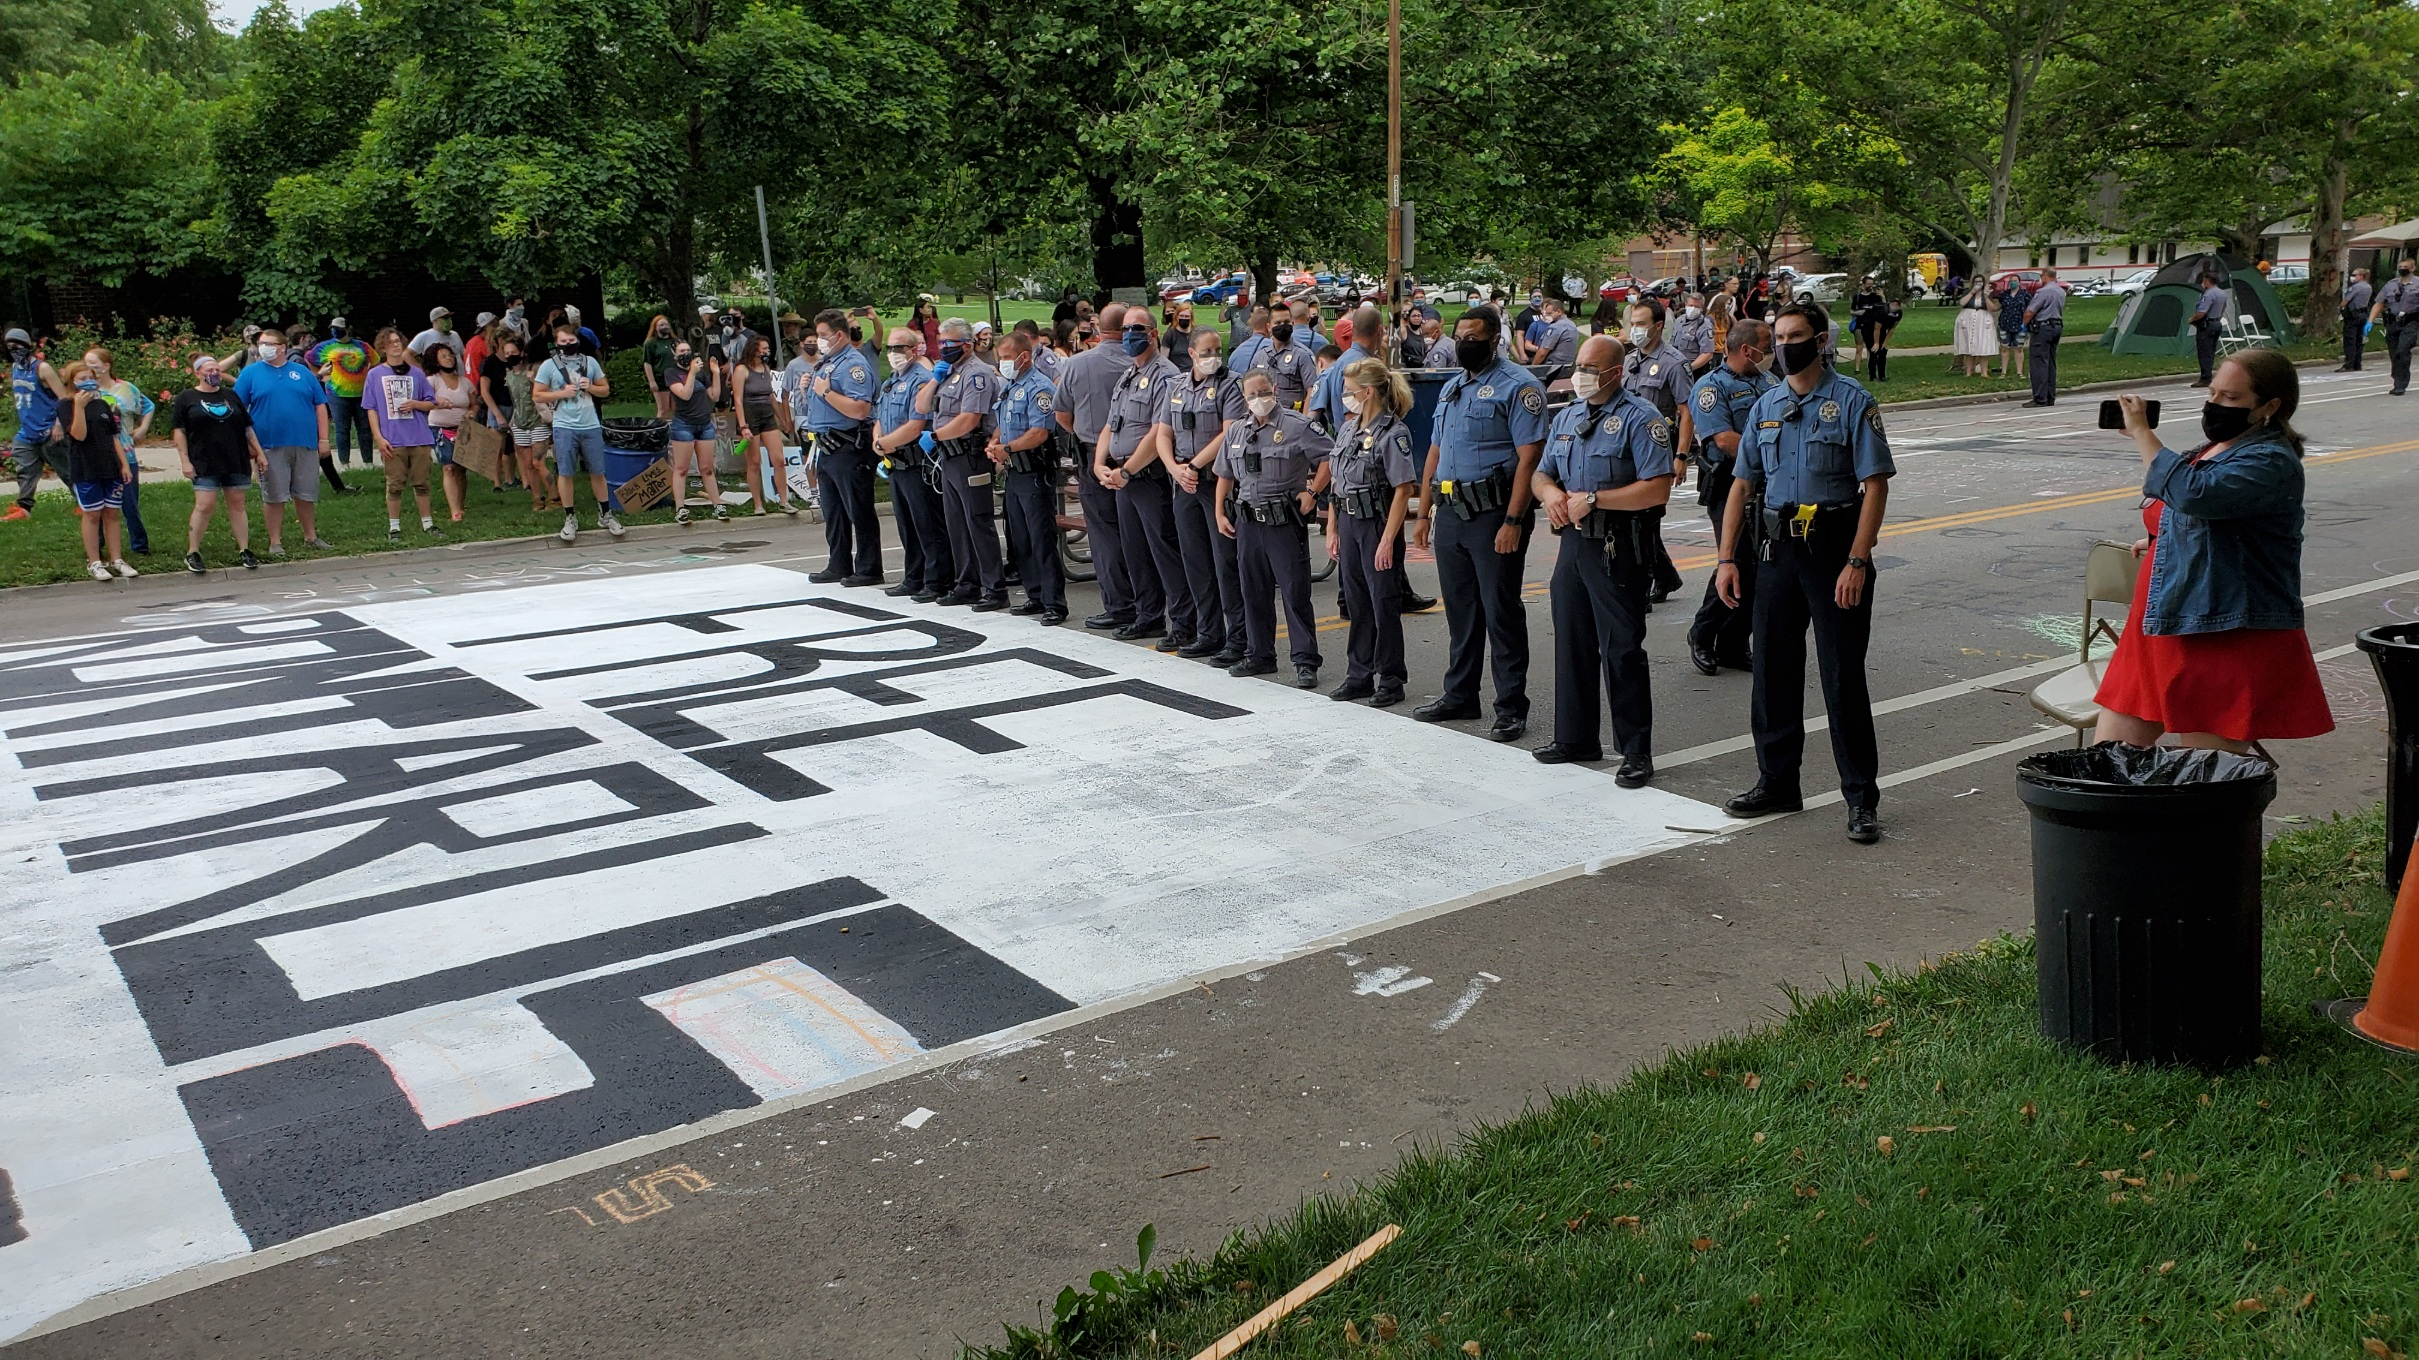 Police stand in the street after clearing away protesters Monday afternoon. (Photo by Stephen Koranda)